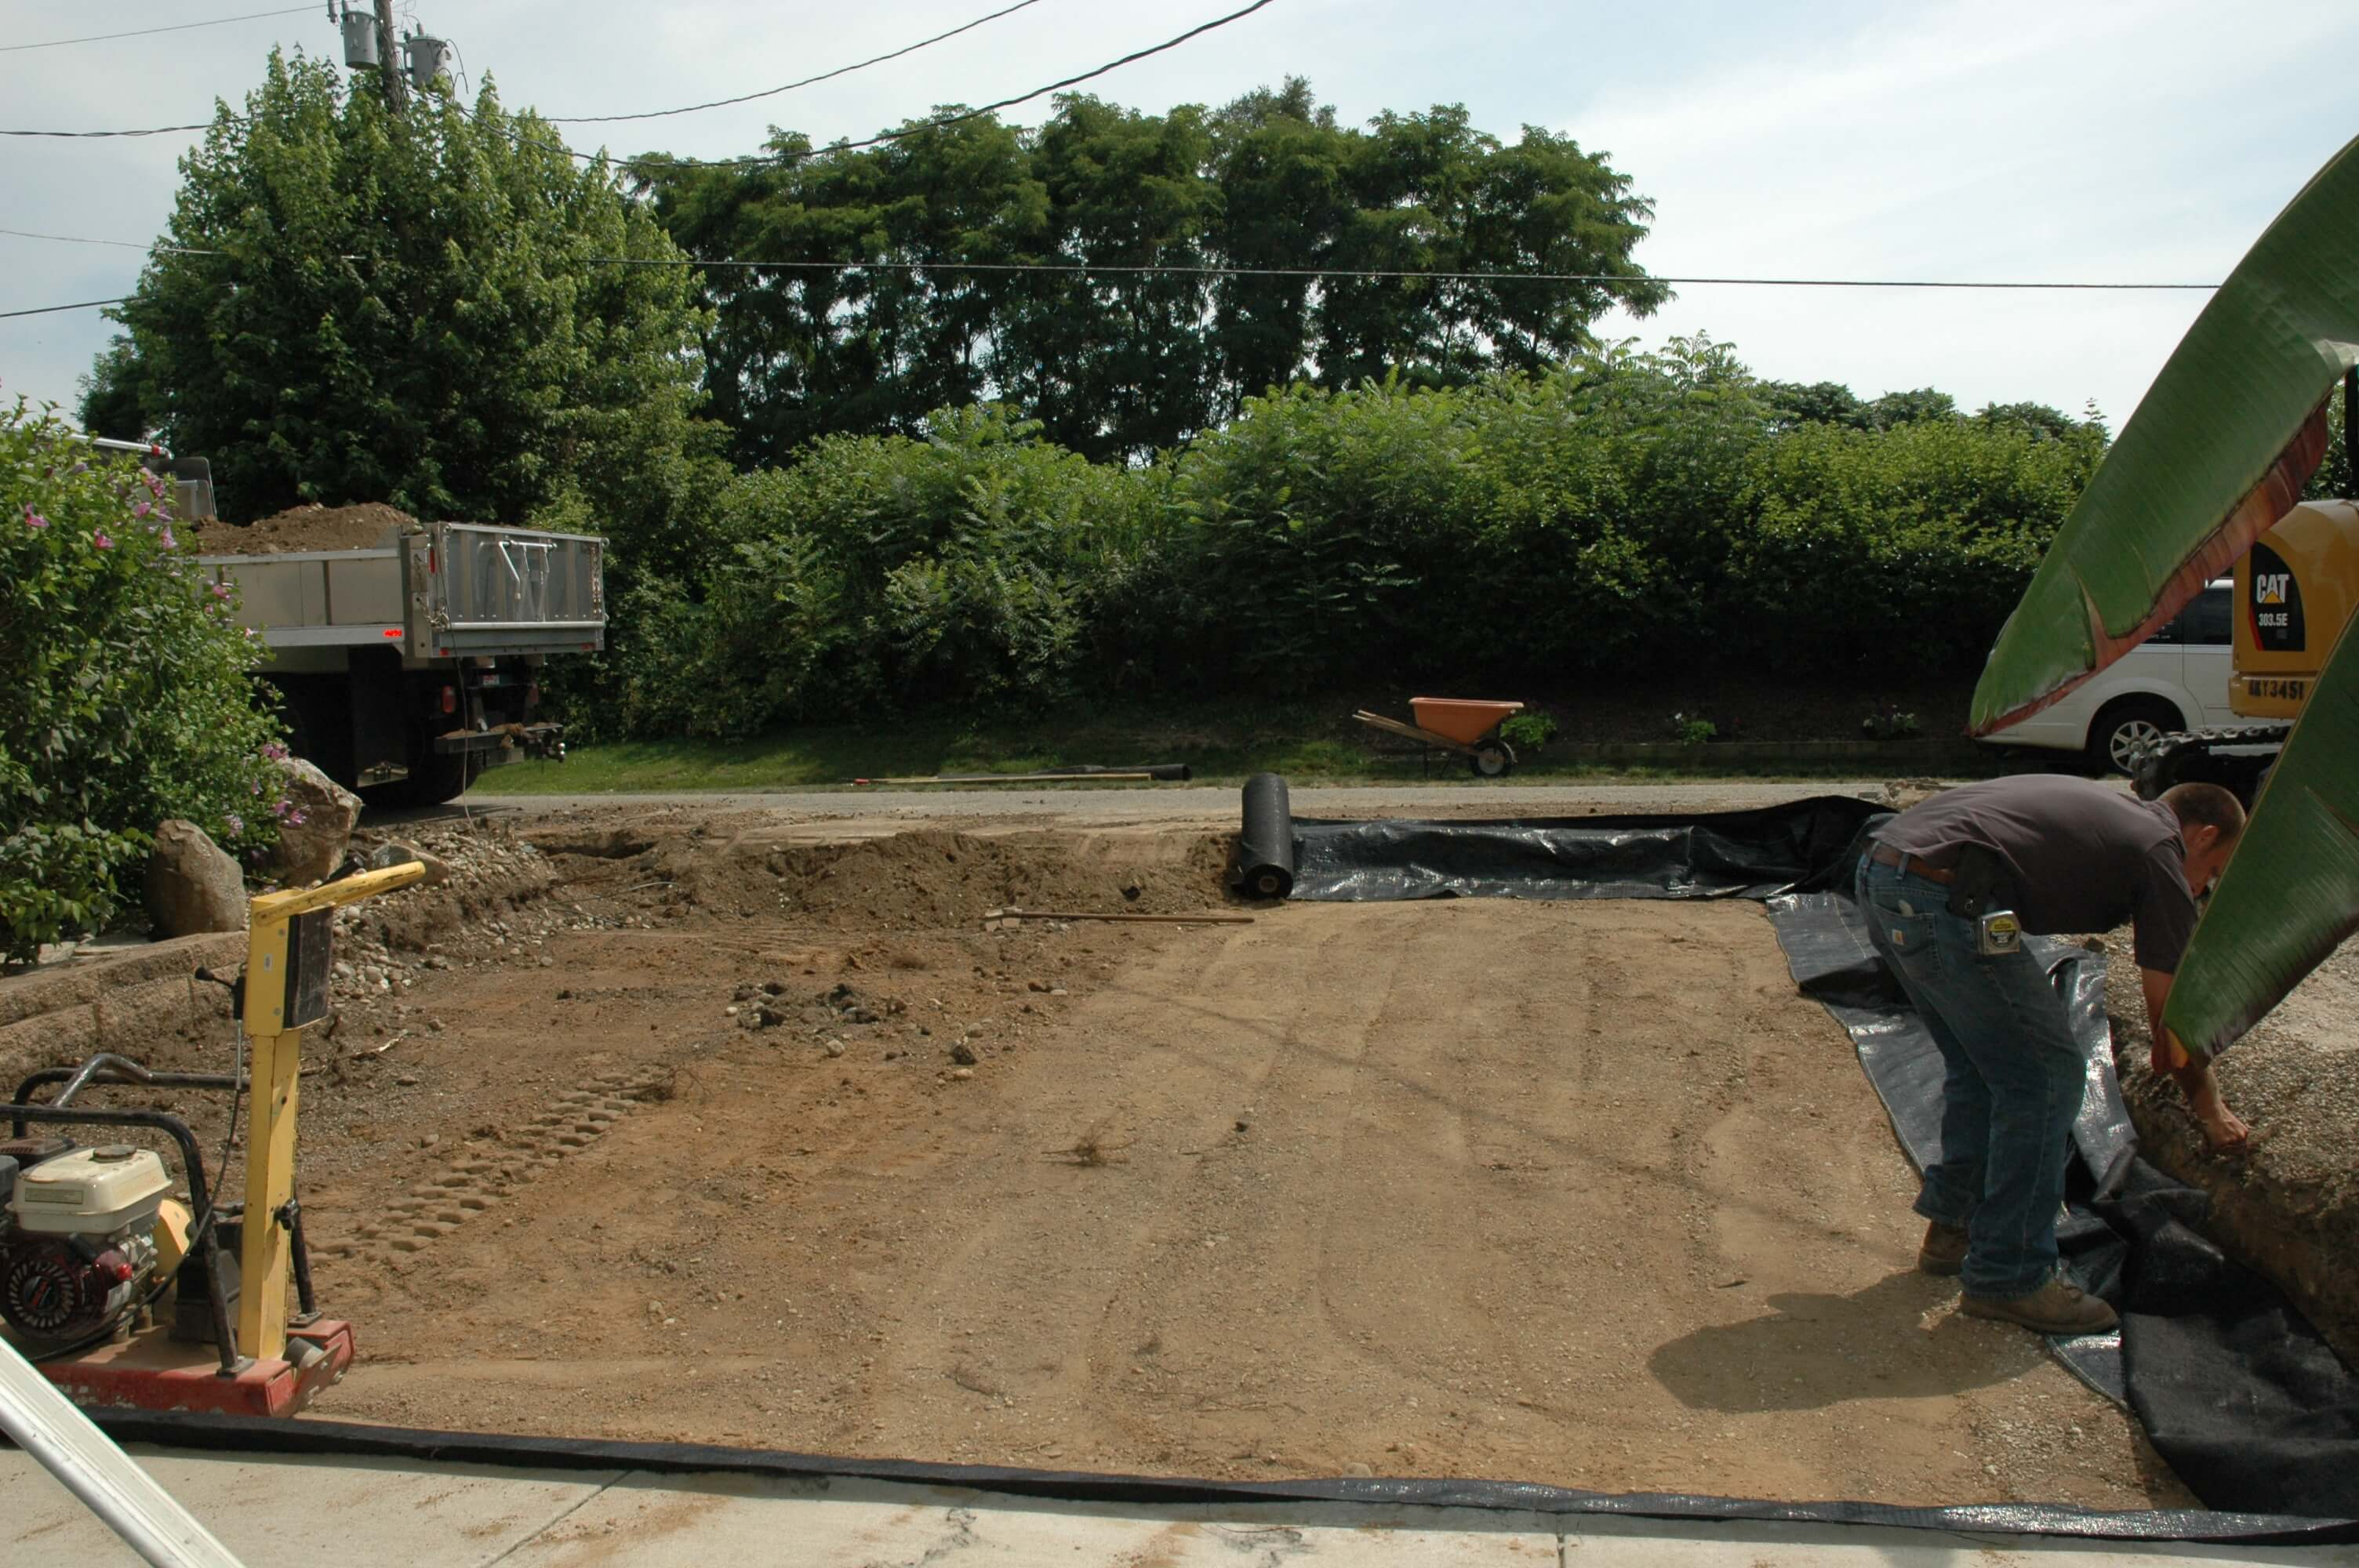 permeable driveway day two foegley landscape inc. Black Bedroom Furniture Sets. Home Design Ideas